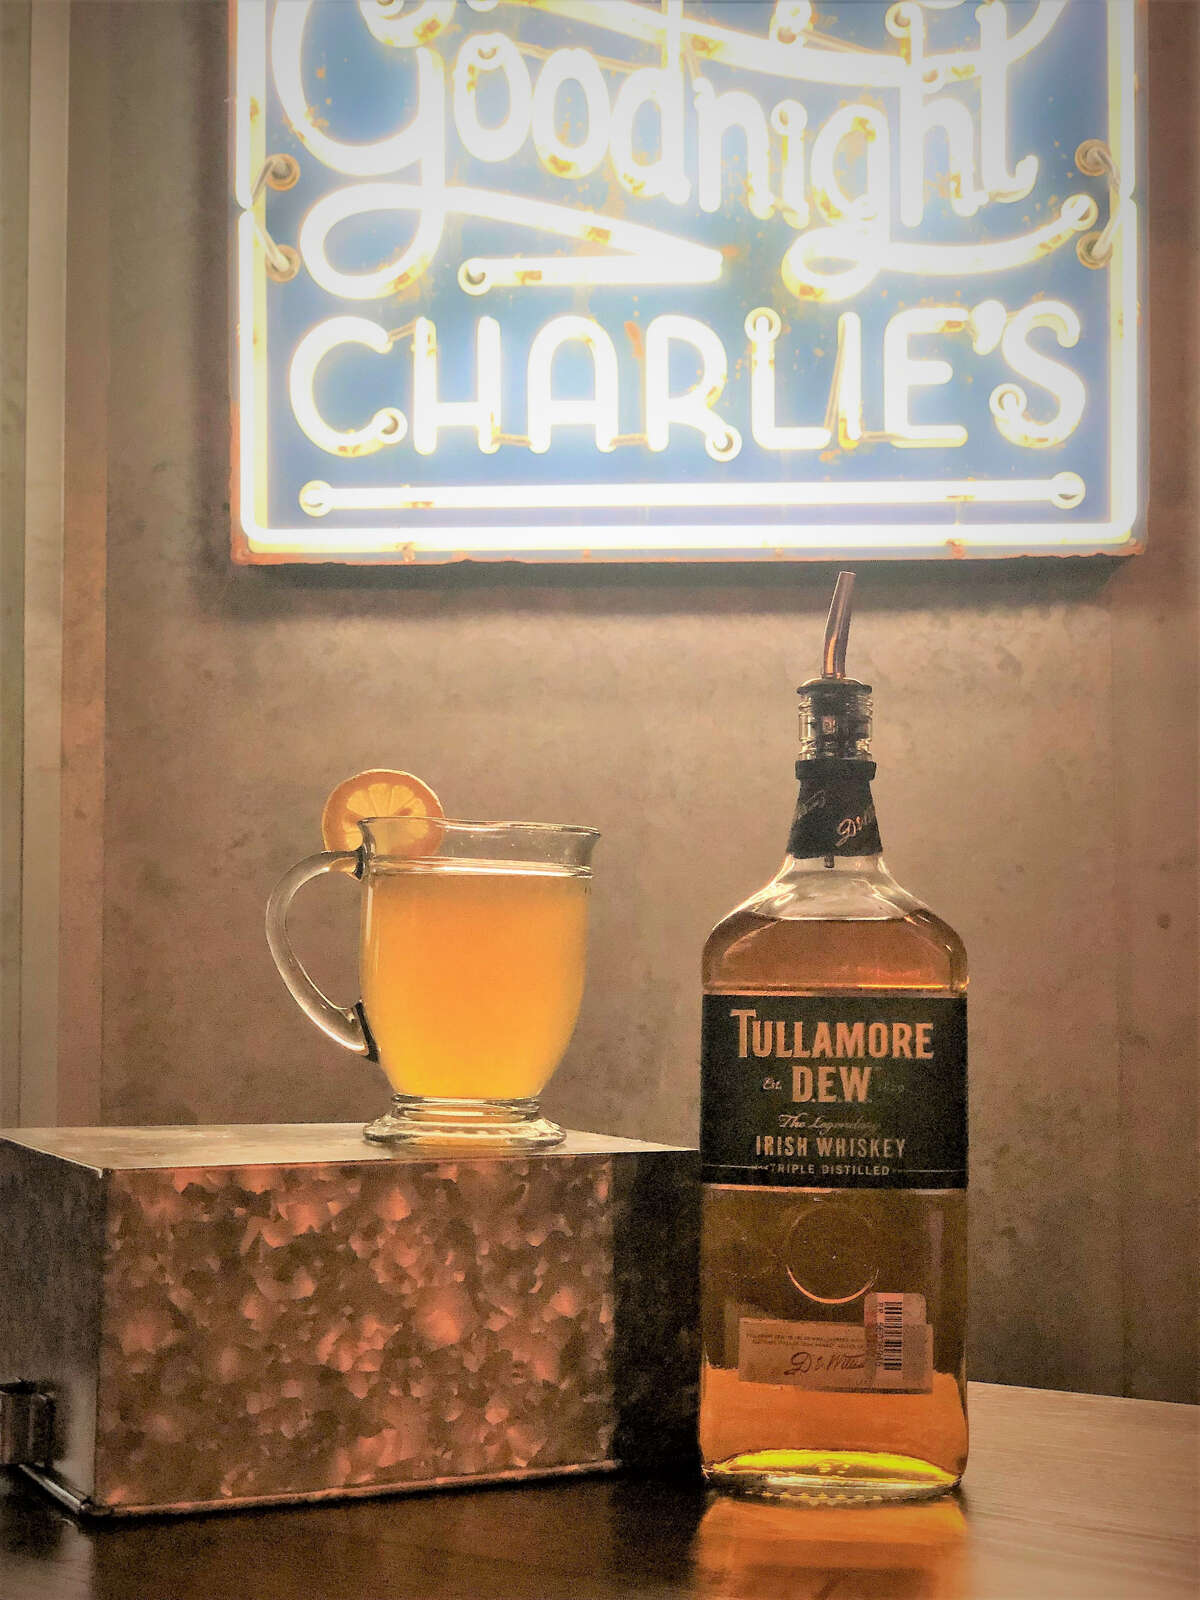 The Big Tom Toddy at Goodnight Charlie's is named for Irish country singer Tom McBride.